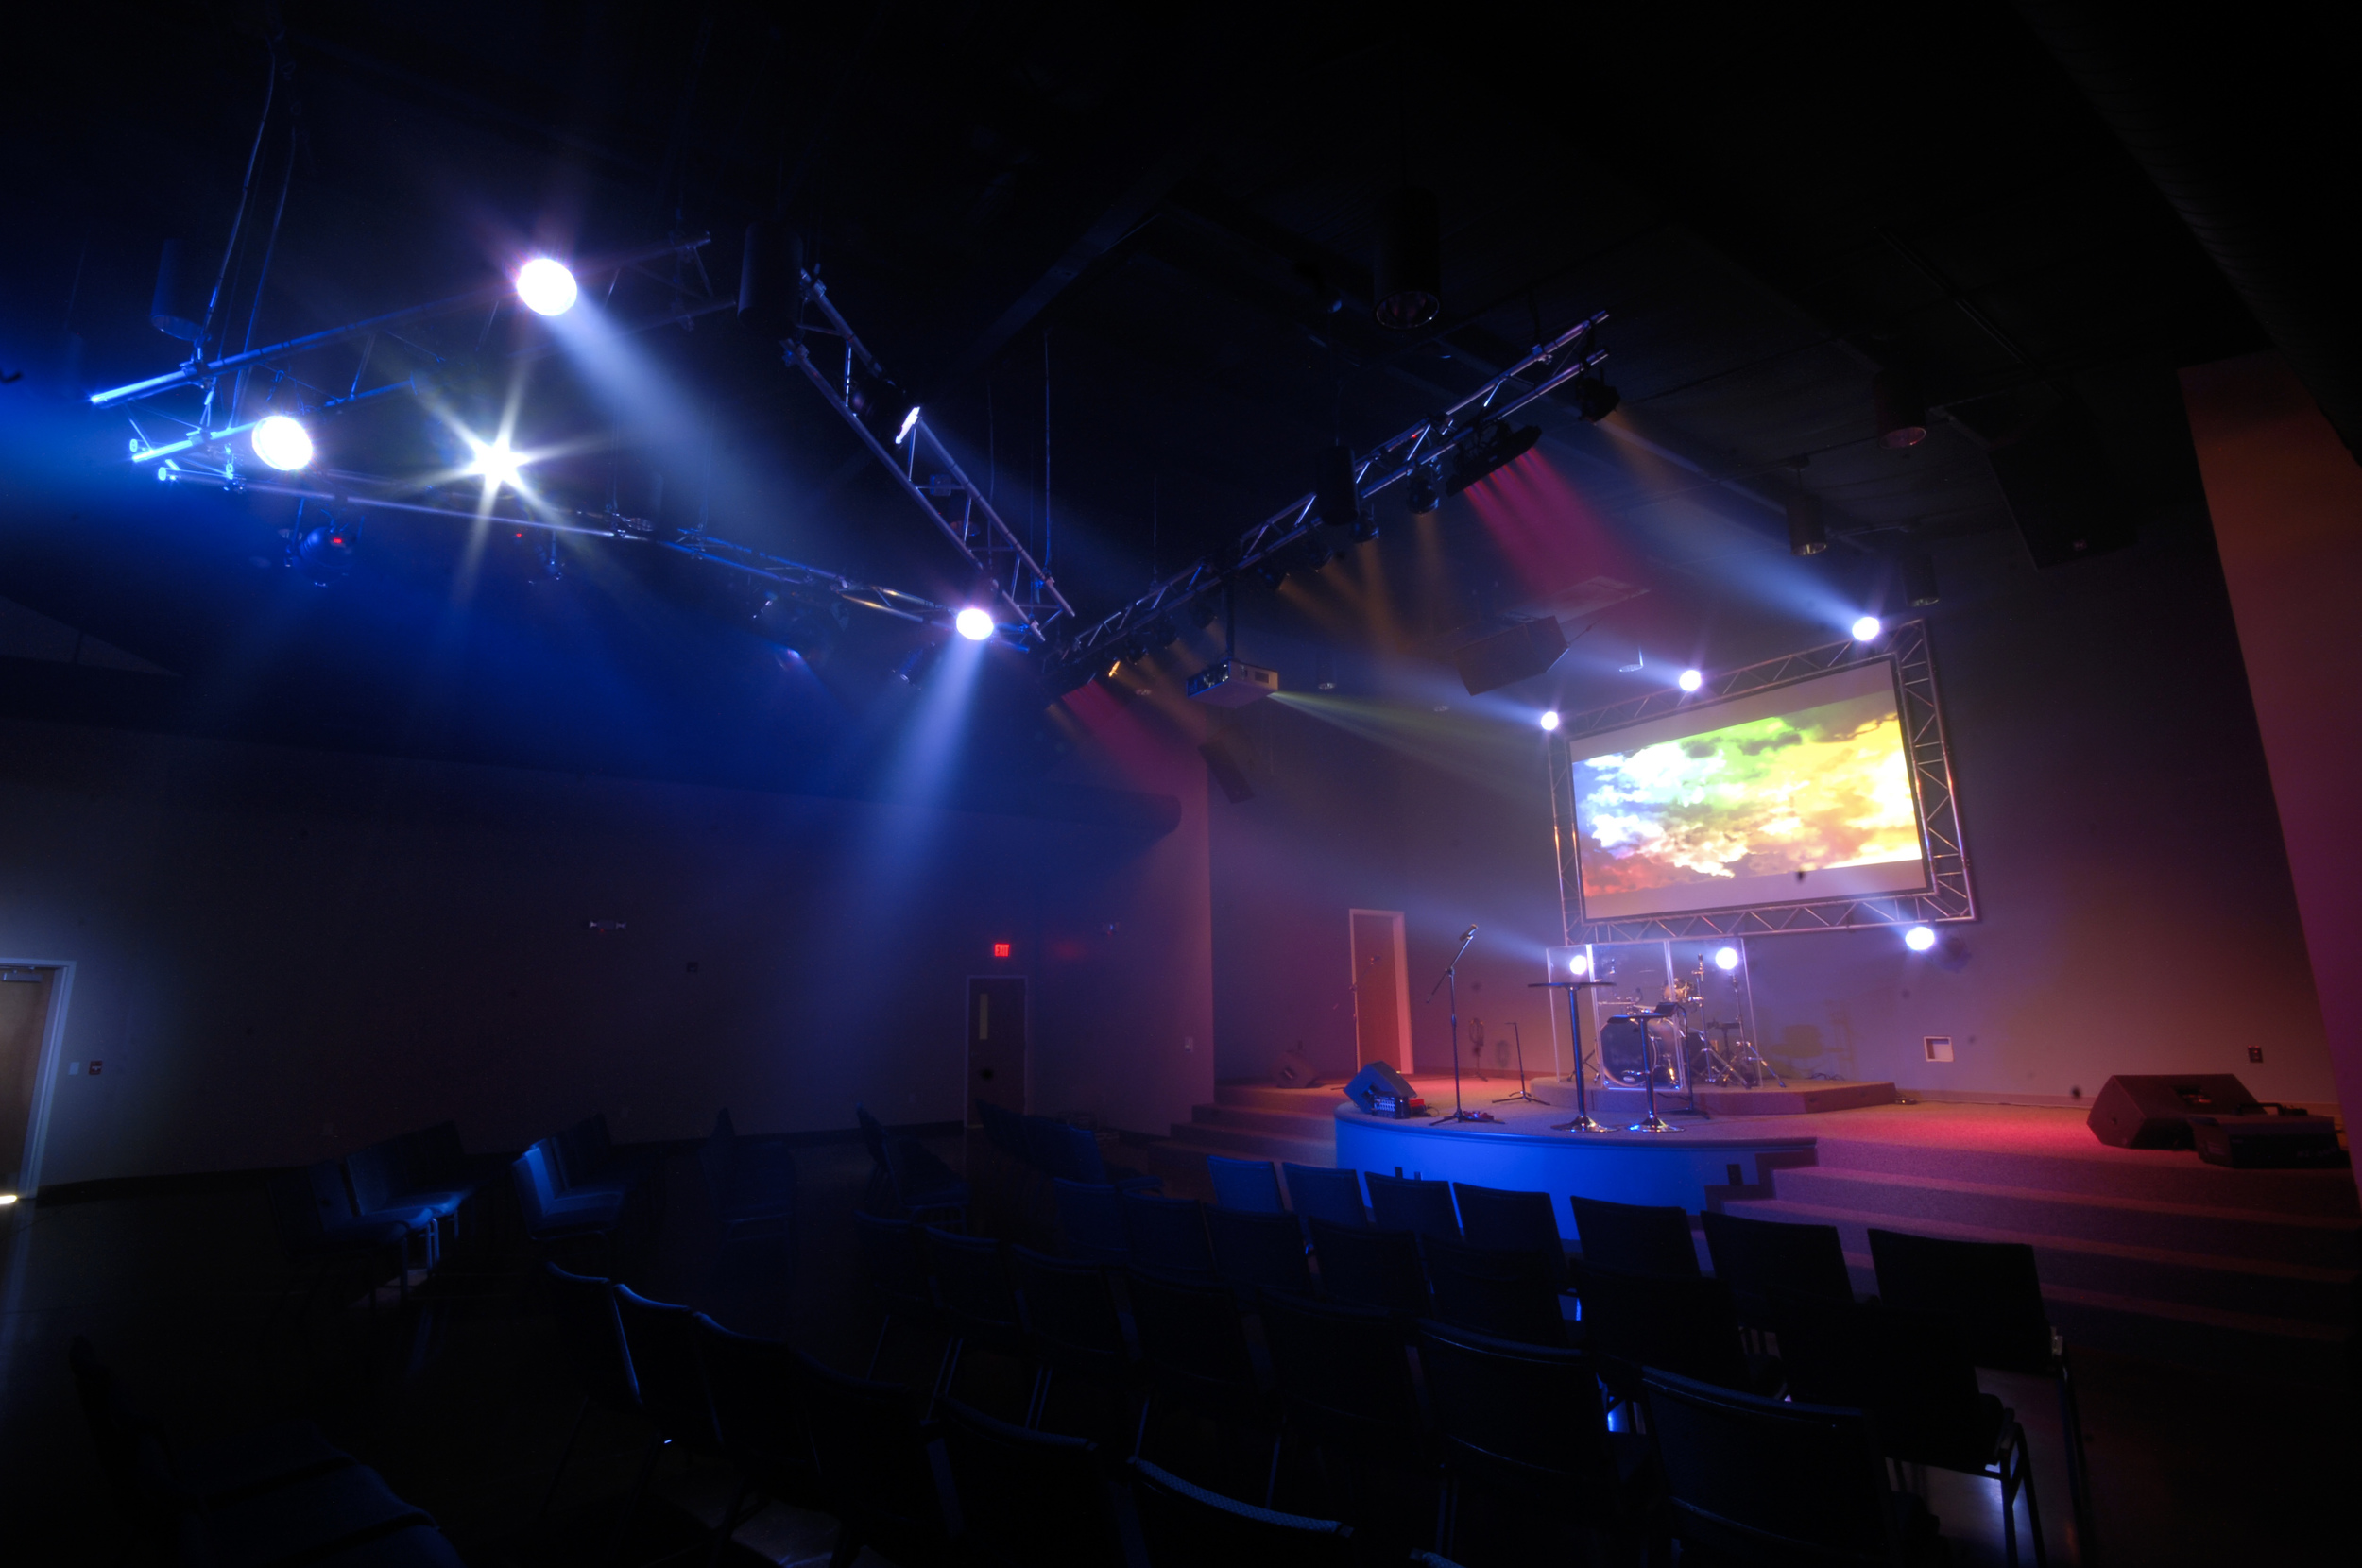 Wynndale_church_youth_stage_design_lighting.jpg